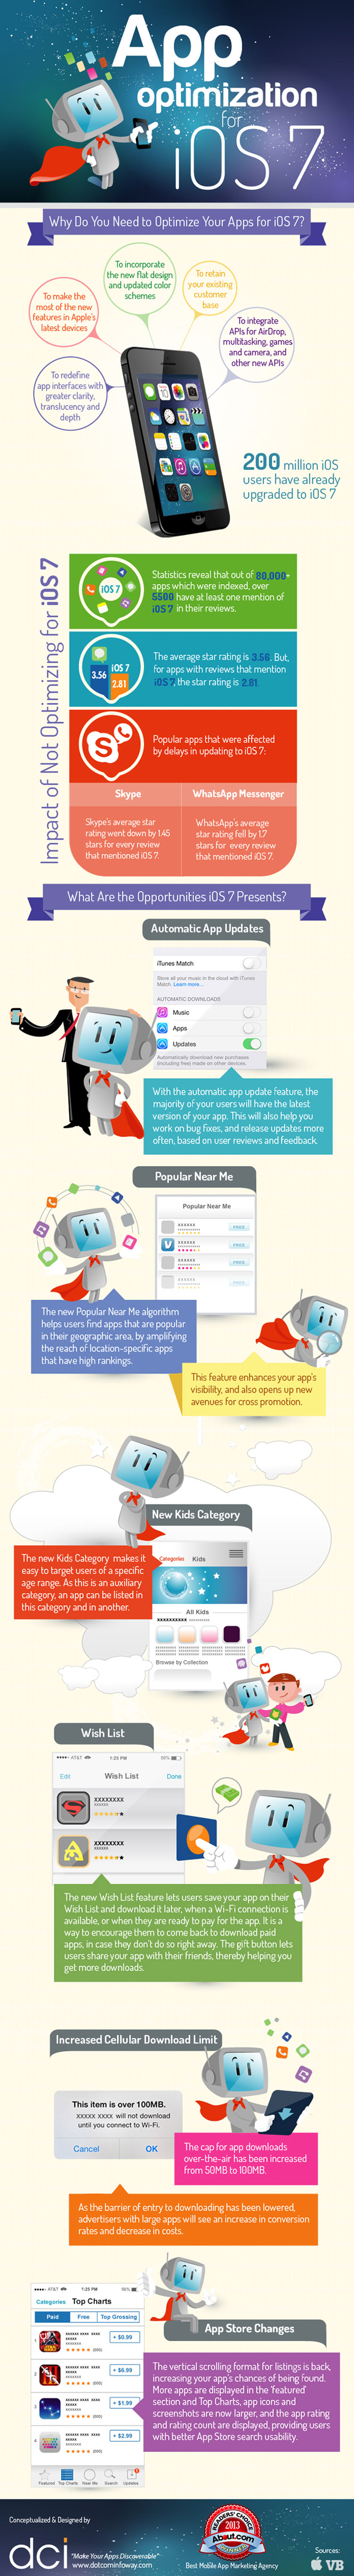 iOS 7 App Optimization Guide-Infographic